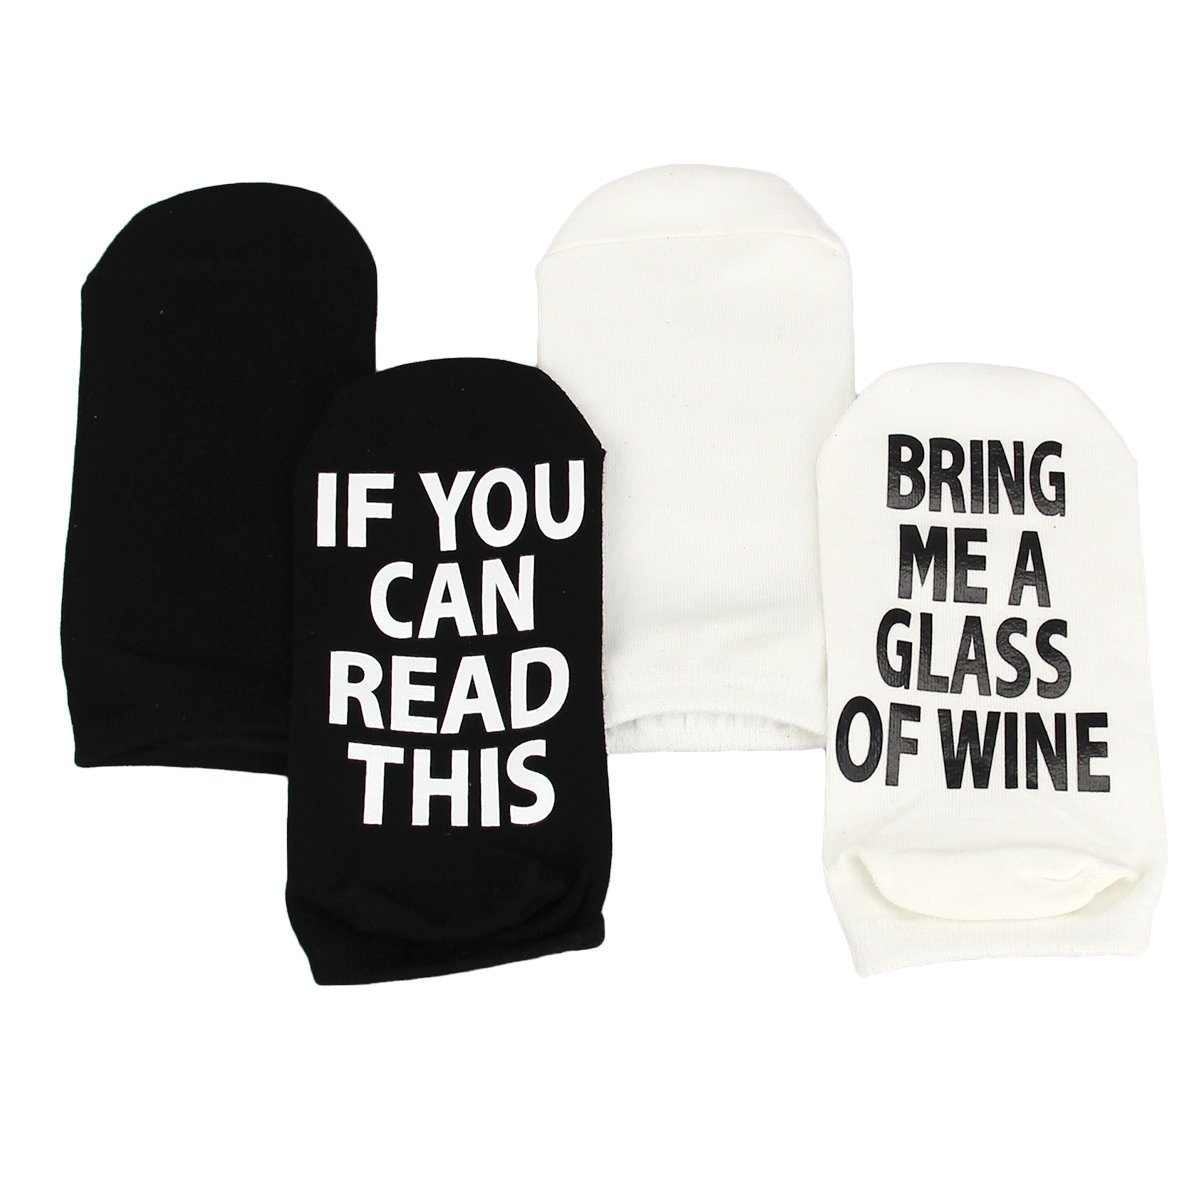 Ndier Party Funny Favor Unisex Cotton Socks with If You Can Read This Bring Me A Glass of Wine - Great Christmas Gifts for Lover Friends, Black and White - 2 pack